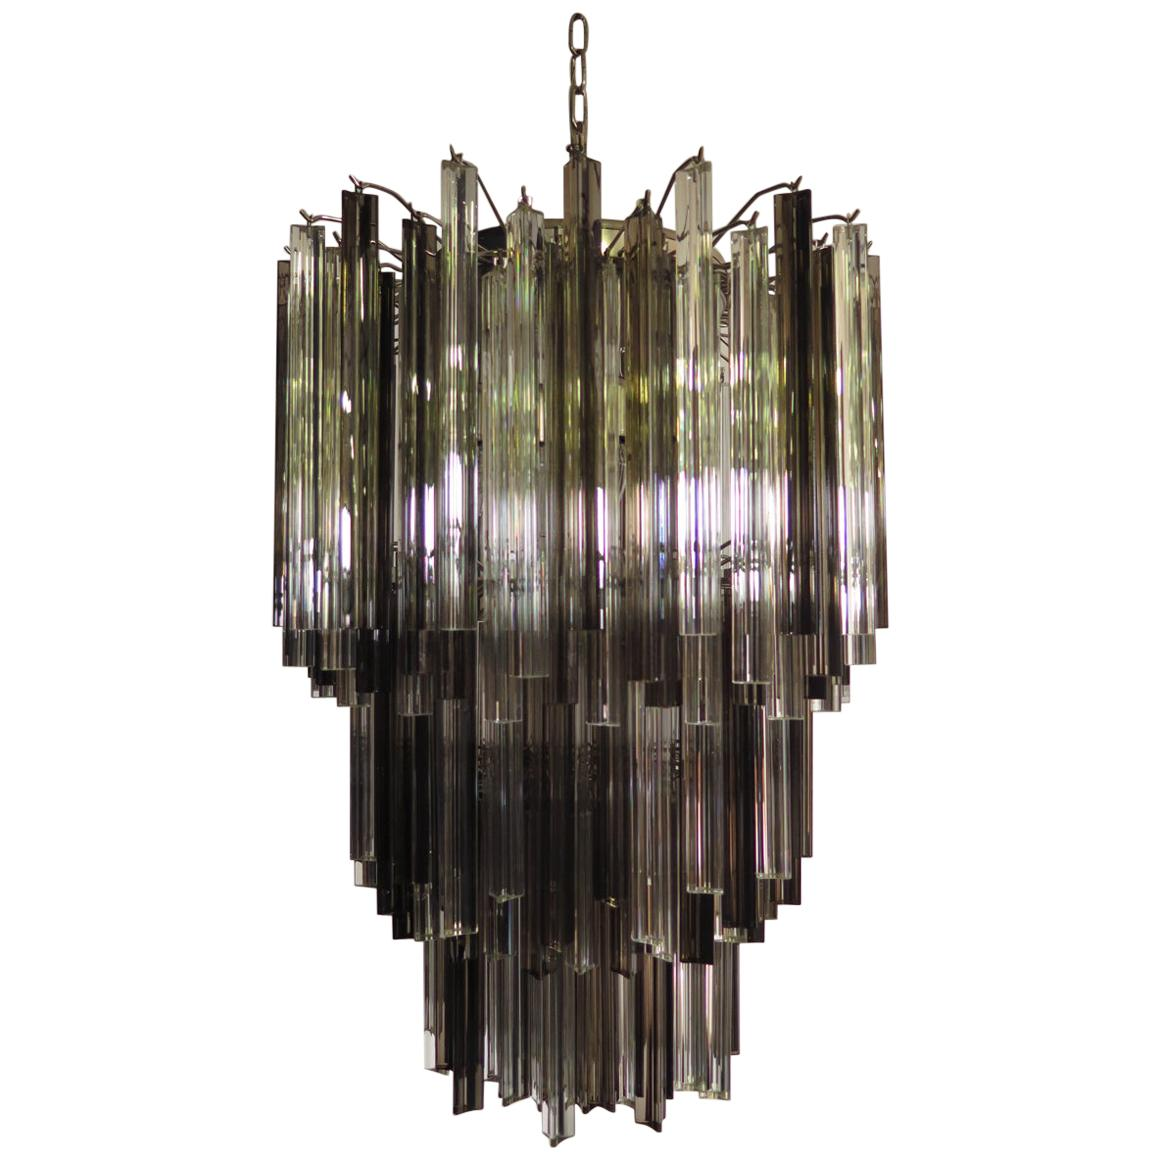 Huge Murano Chandelier Trasaparent and Smoked Triedri, 184 Prism, Mariangela M